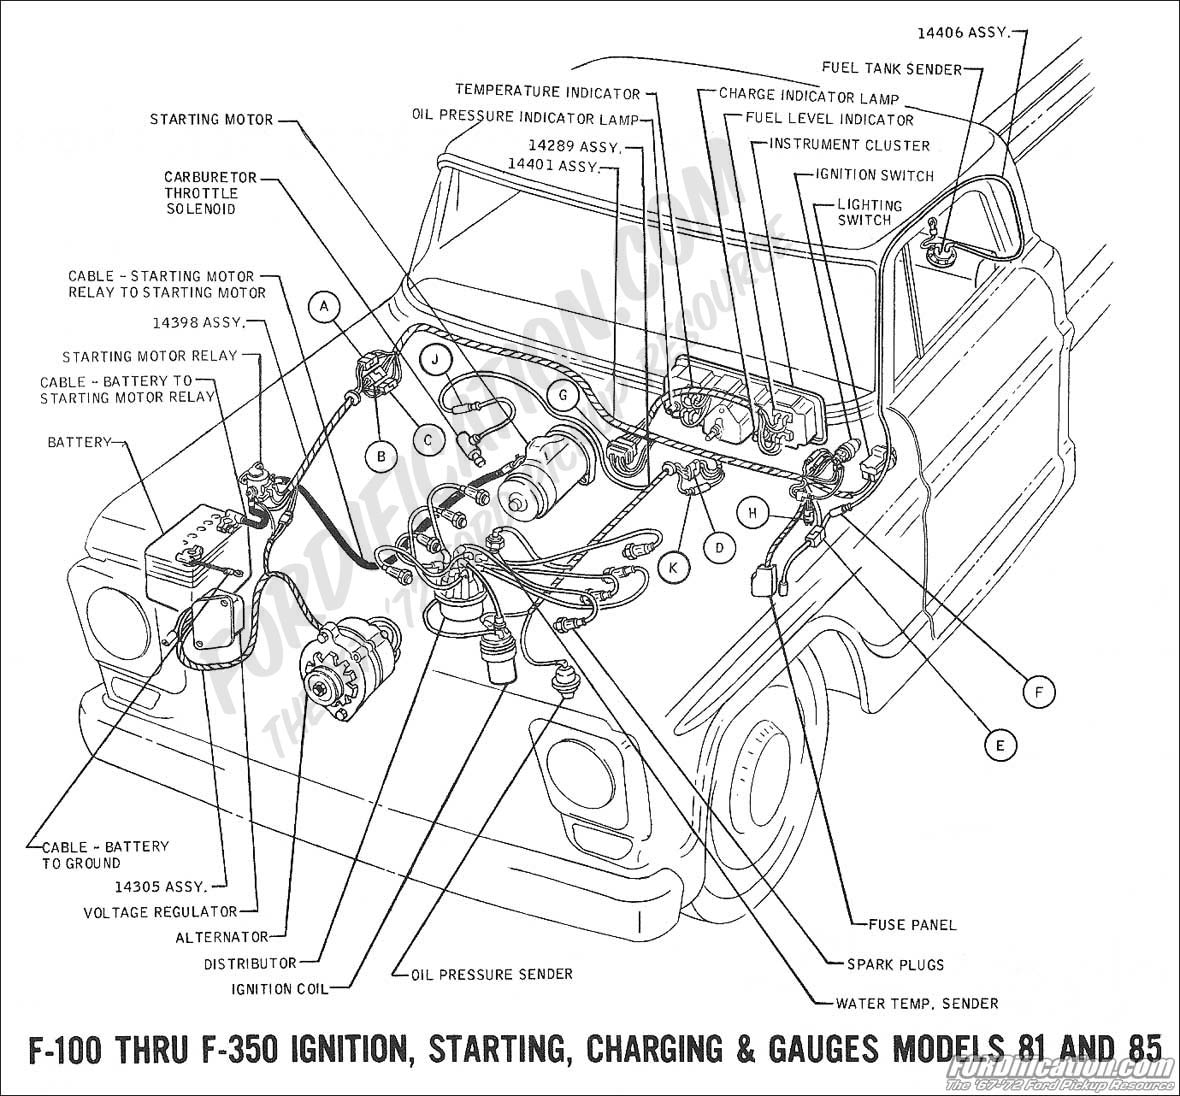 1975 Ford F 250 Wiring Auto Electrical Diagram 2012 Chevrolet Volt Oem Fuse Box 22785253 11 12 14 Truck Technical Drawings And Schematics